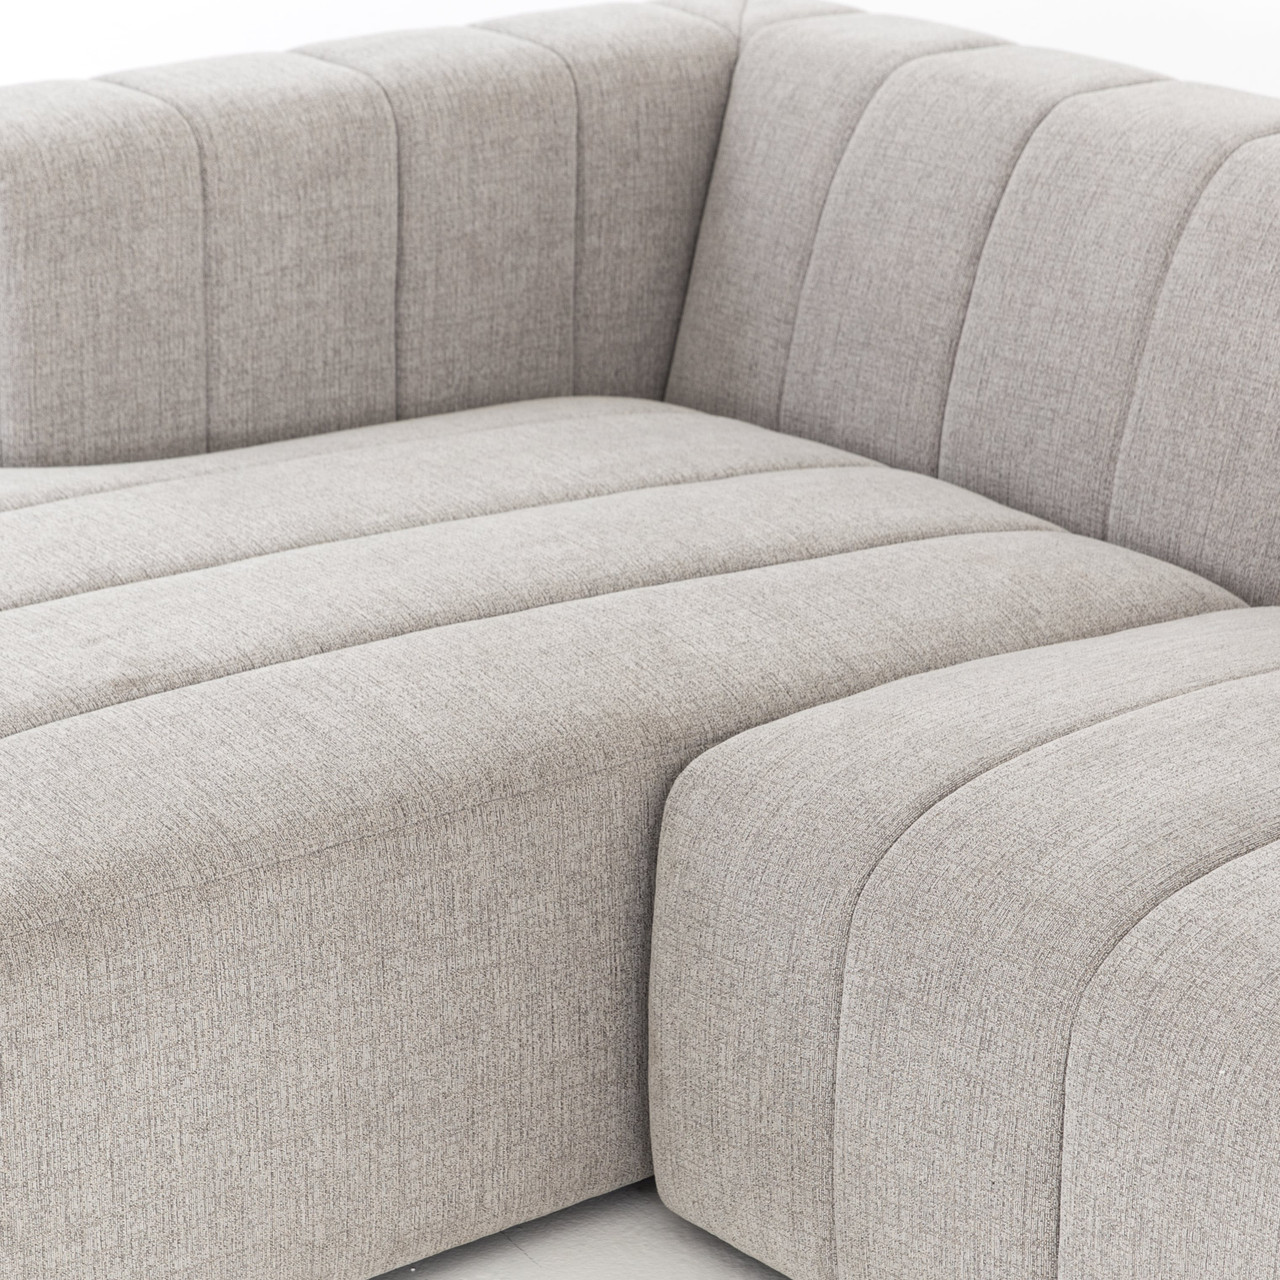 Milagro Modern Channeled Sectional 4-PC